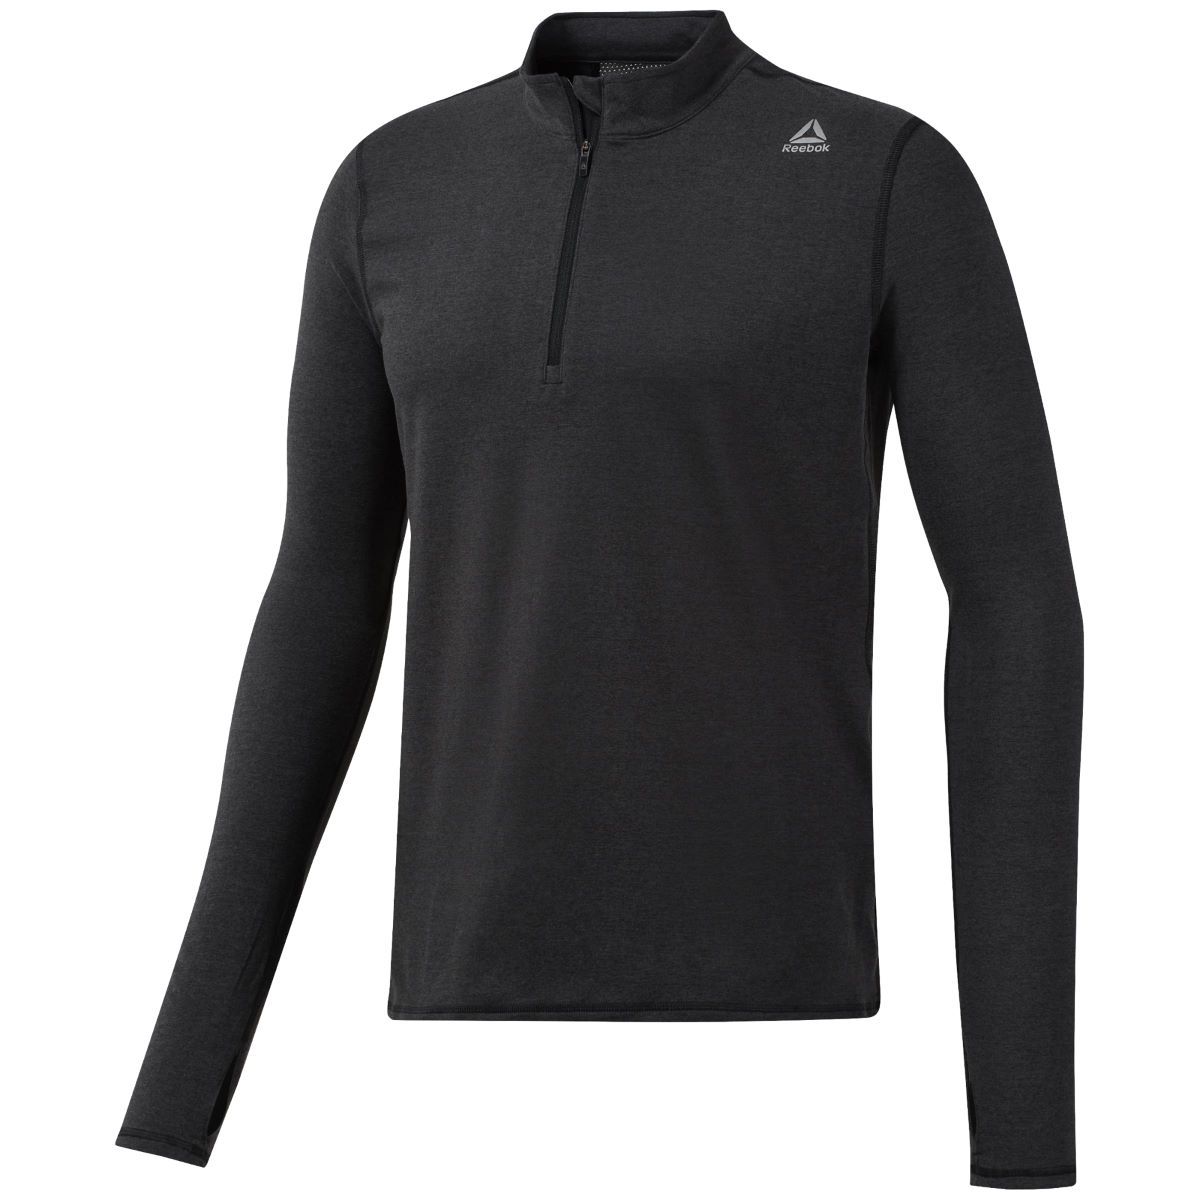 Reebok Reebok RE Quarter Zip   Long Sleeve Running Tops